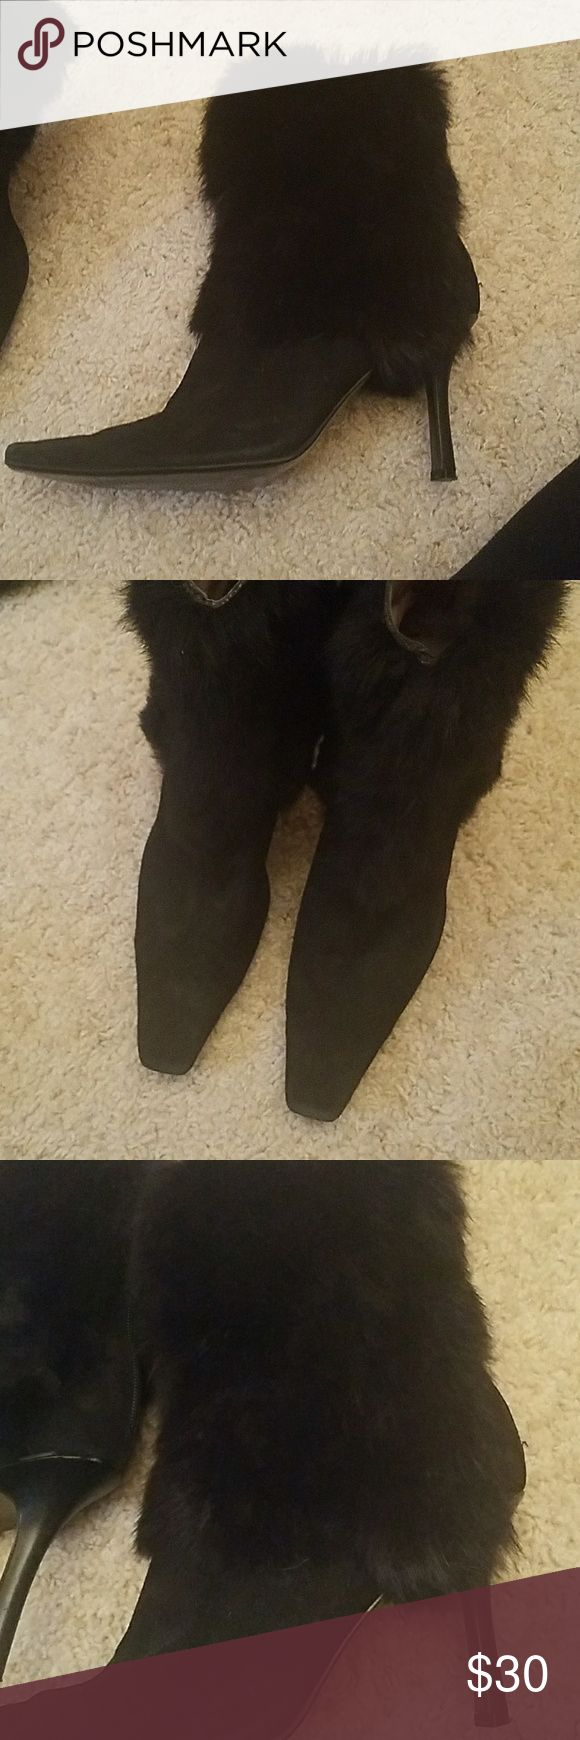 Nine West black fur and suede boots Nine West black suede boots with fur trim. Mix match-right boot is size 10 and left boot is size 9 1/2. In great condition Nine West Shoes Heeled Boots